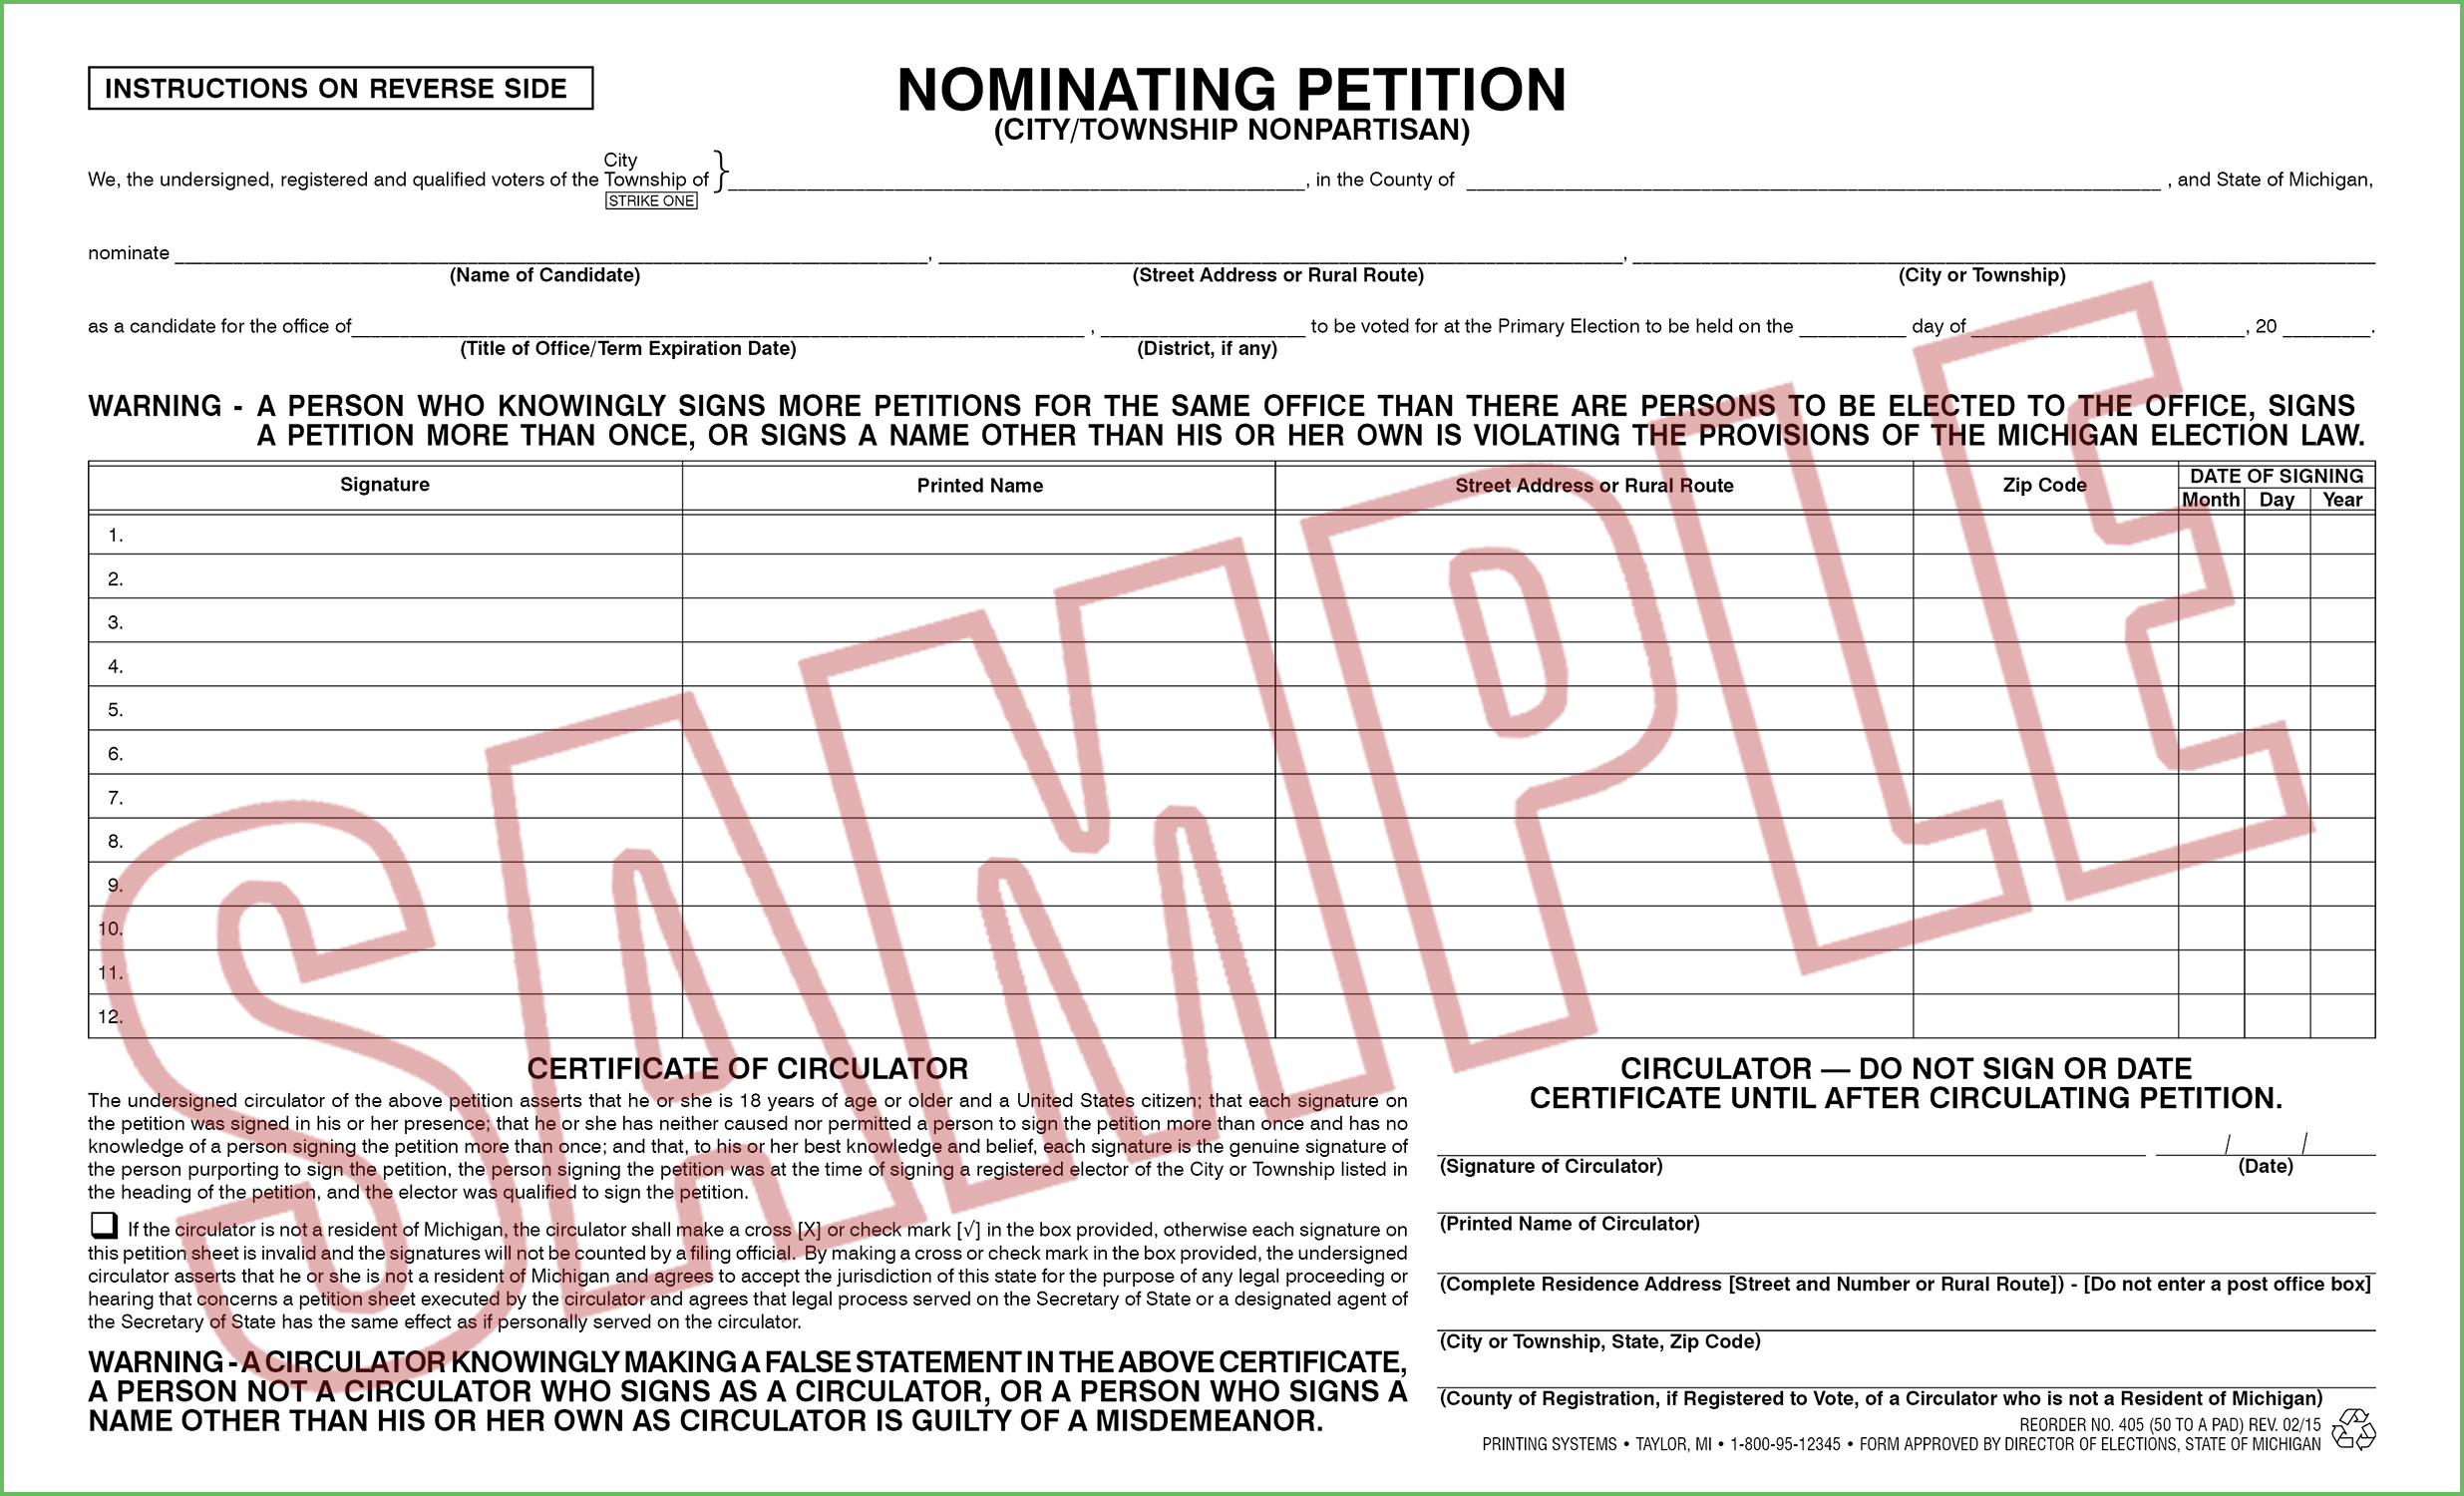 405 Nominating Petition (Ci/Twp) Nonpartisan (50 per pad)